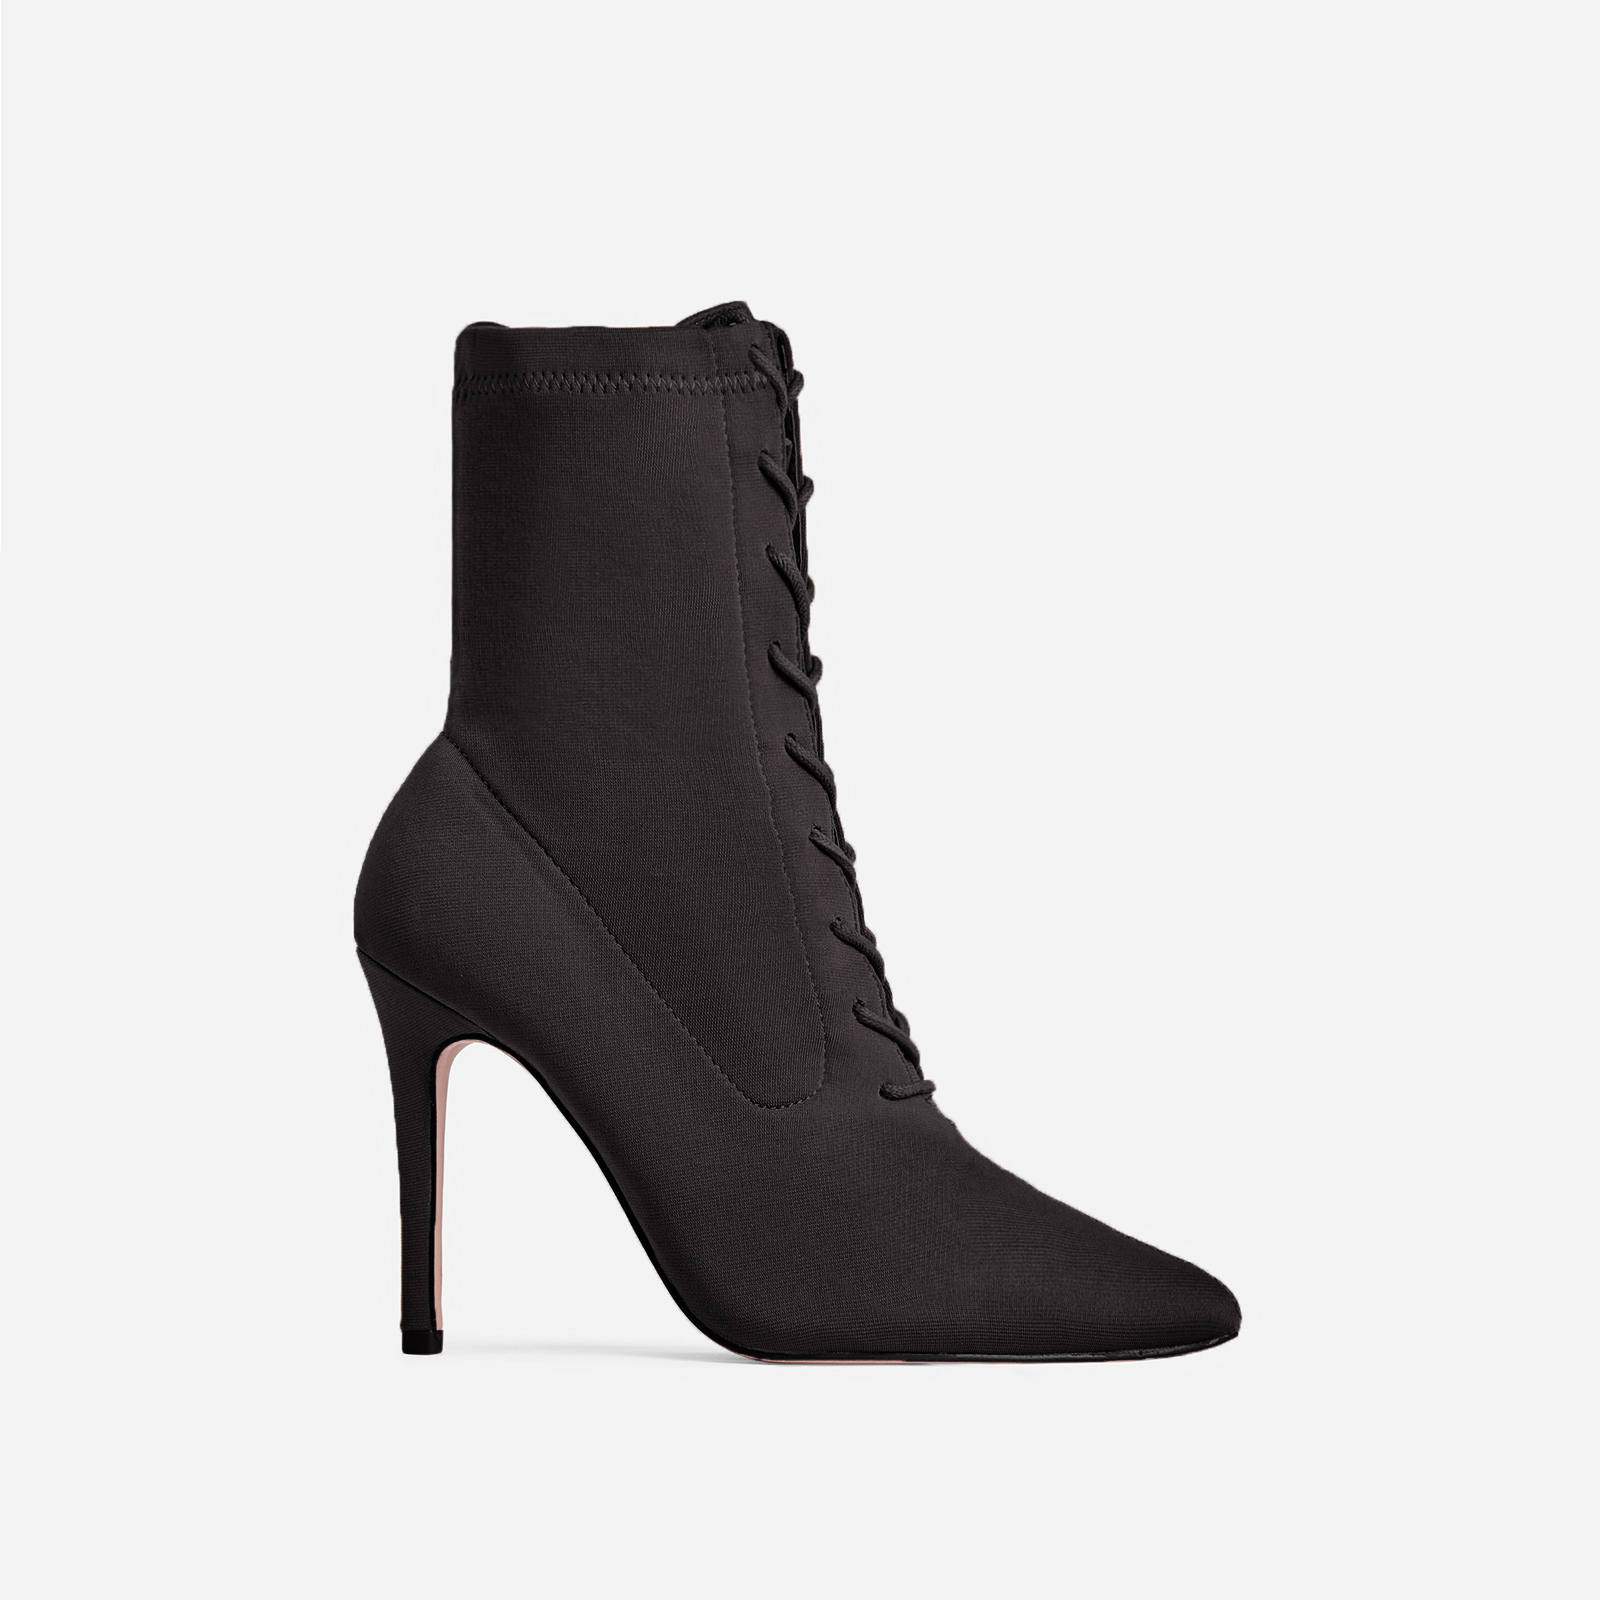 Cosmic Lace Up Ankle Boot In Black Knit Image 1